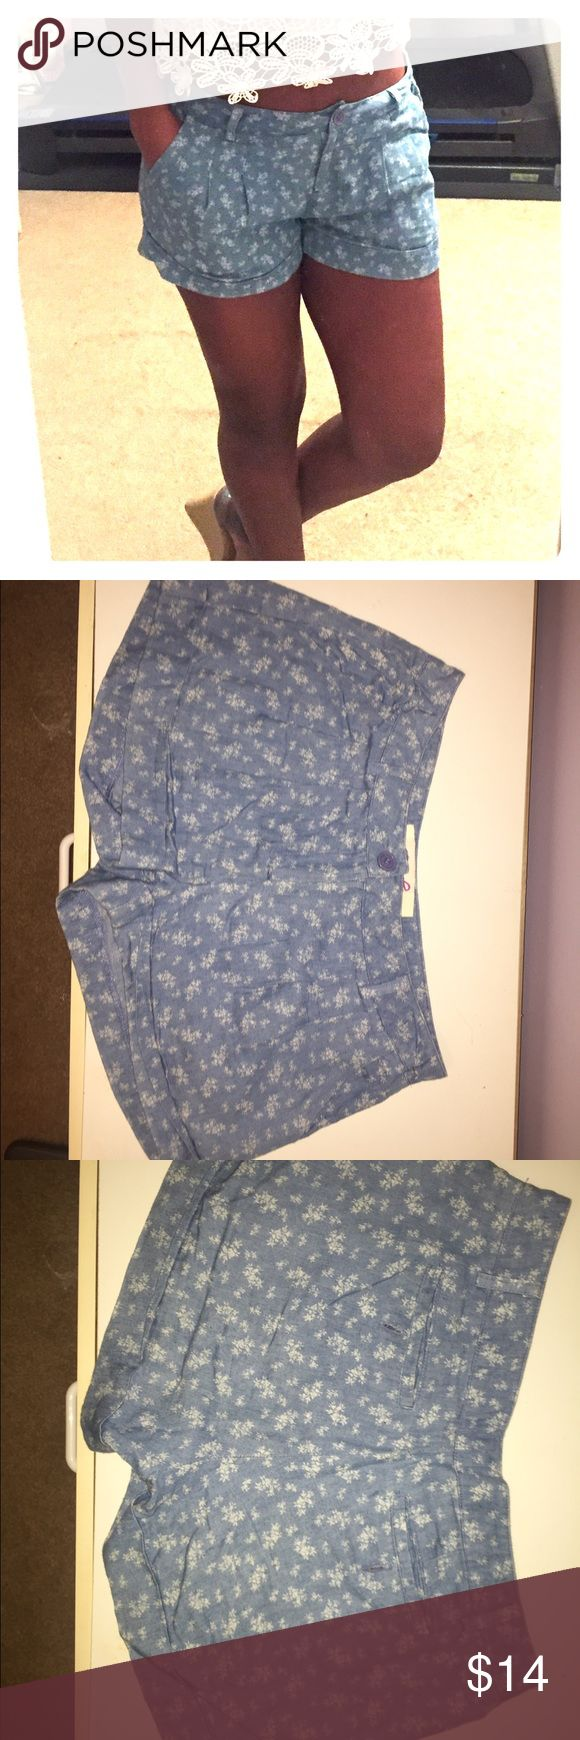 Light Blue Print shorts Light Blue shorts with a white floral print. Short are light weight and very comfortable. Pockets in both front and back Francesca's Collections Shorts